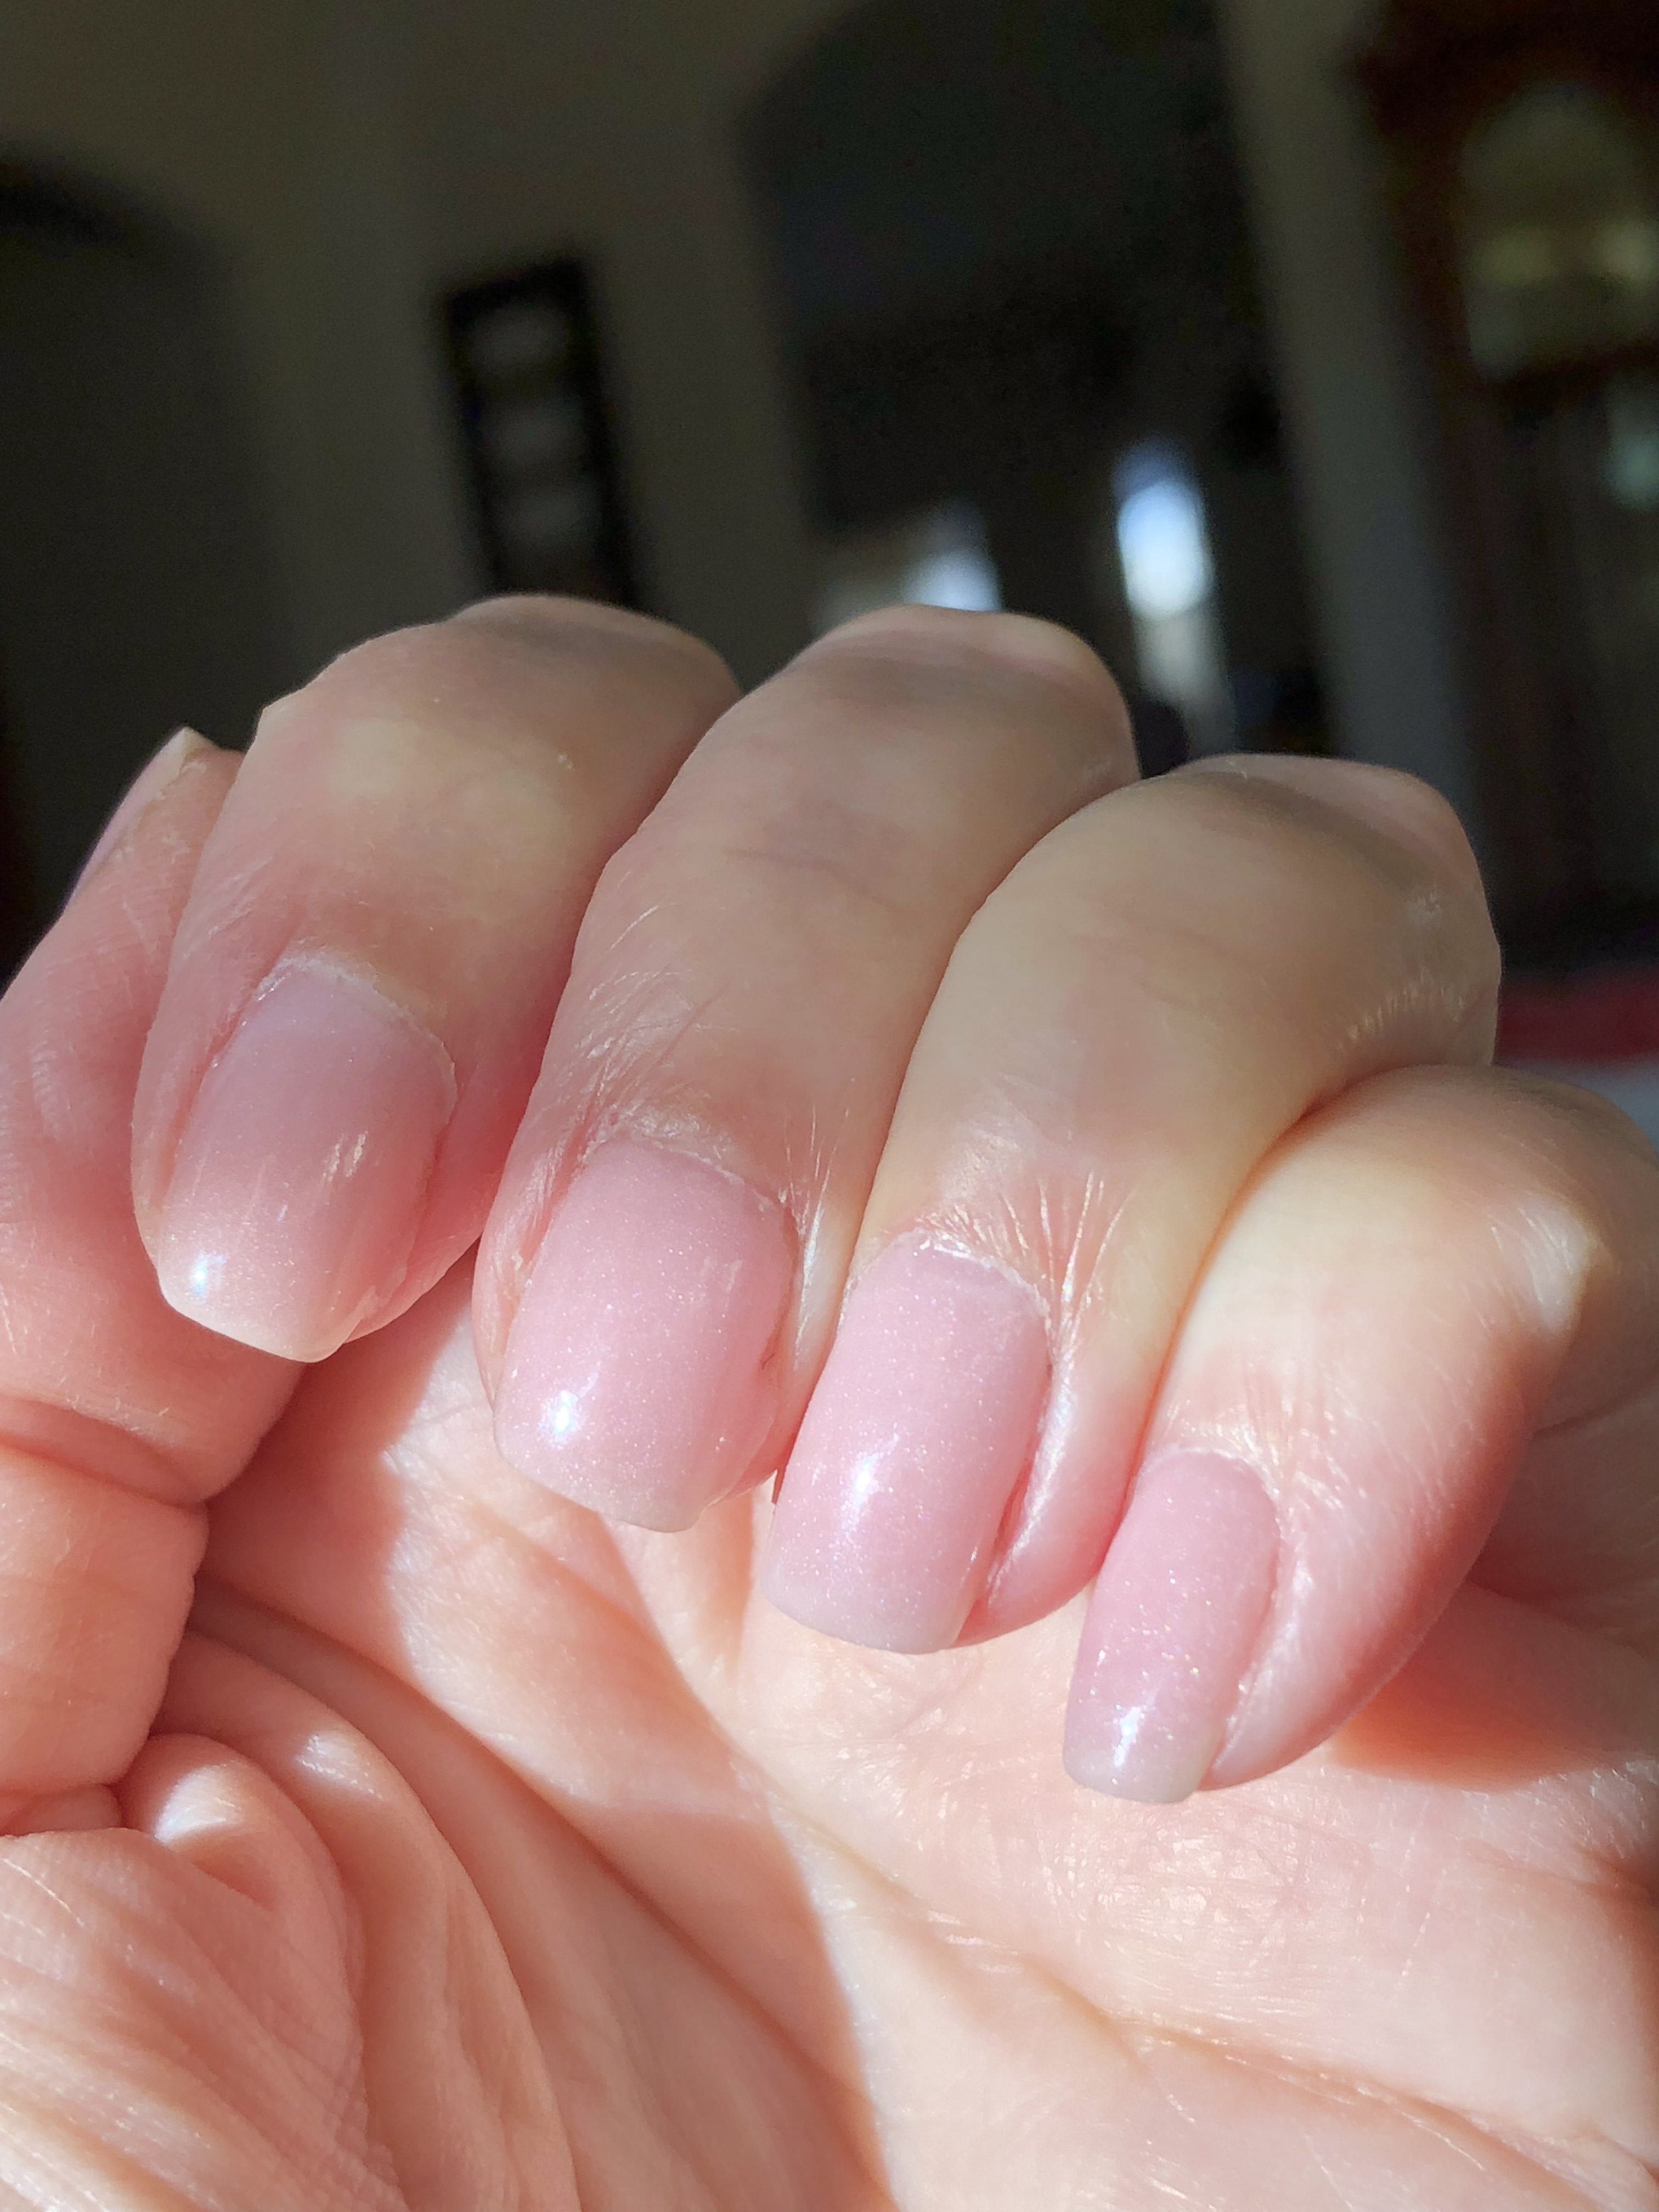 My Quest for the Perfect Manicure